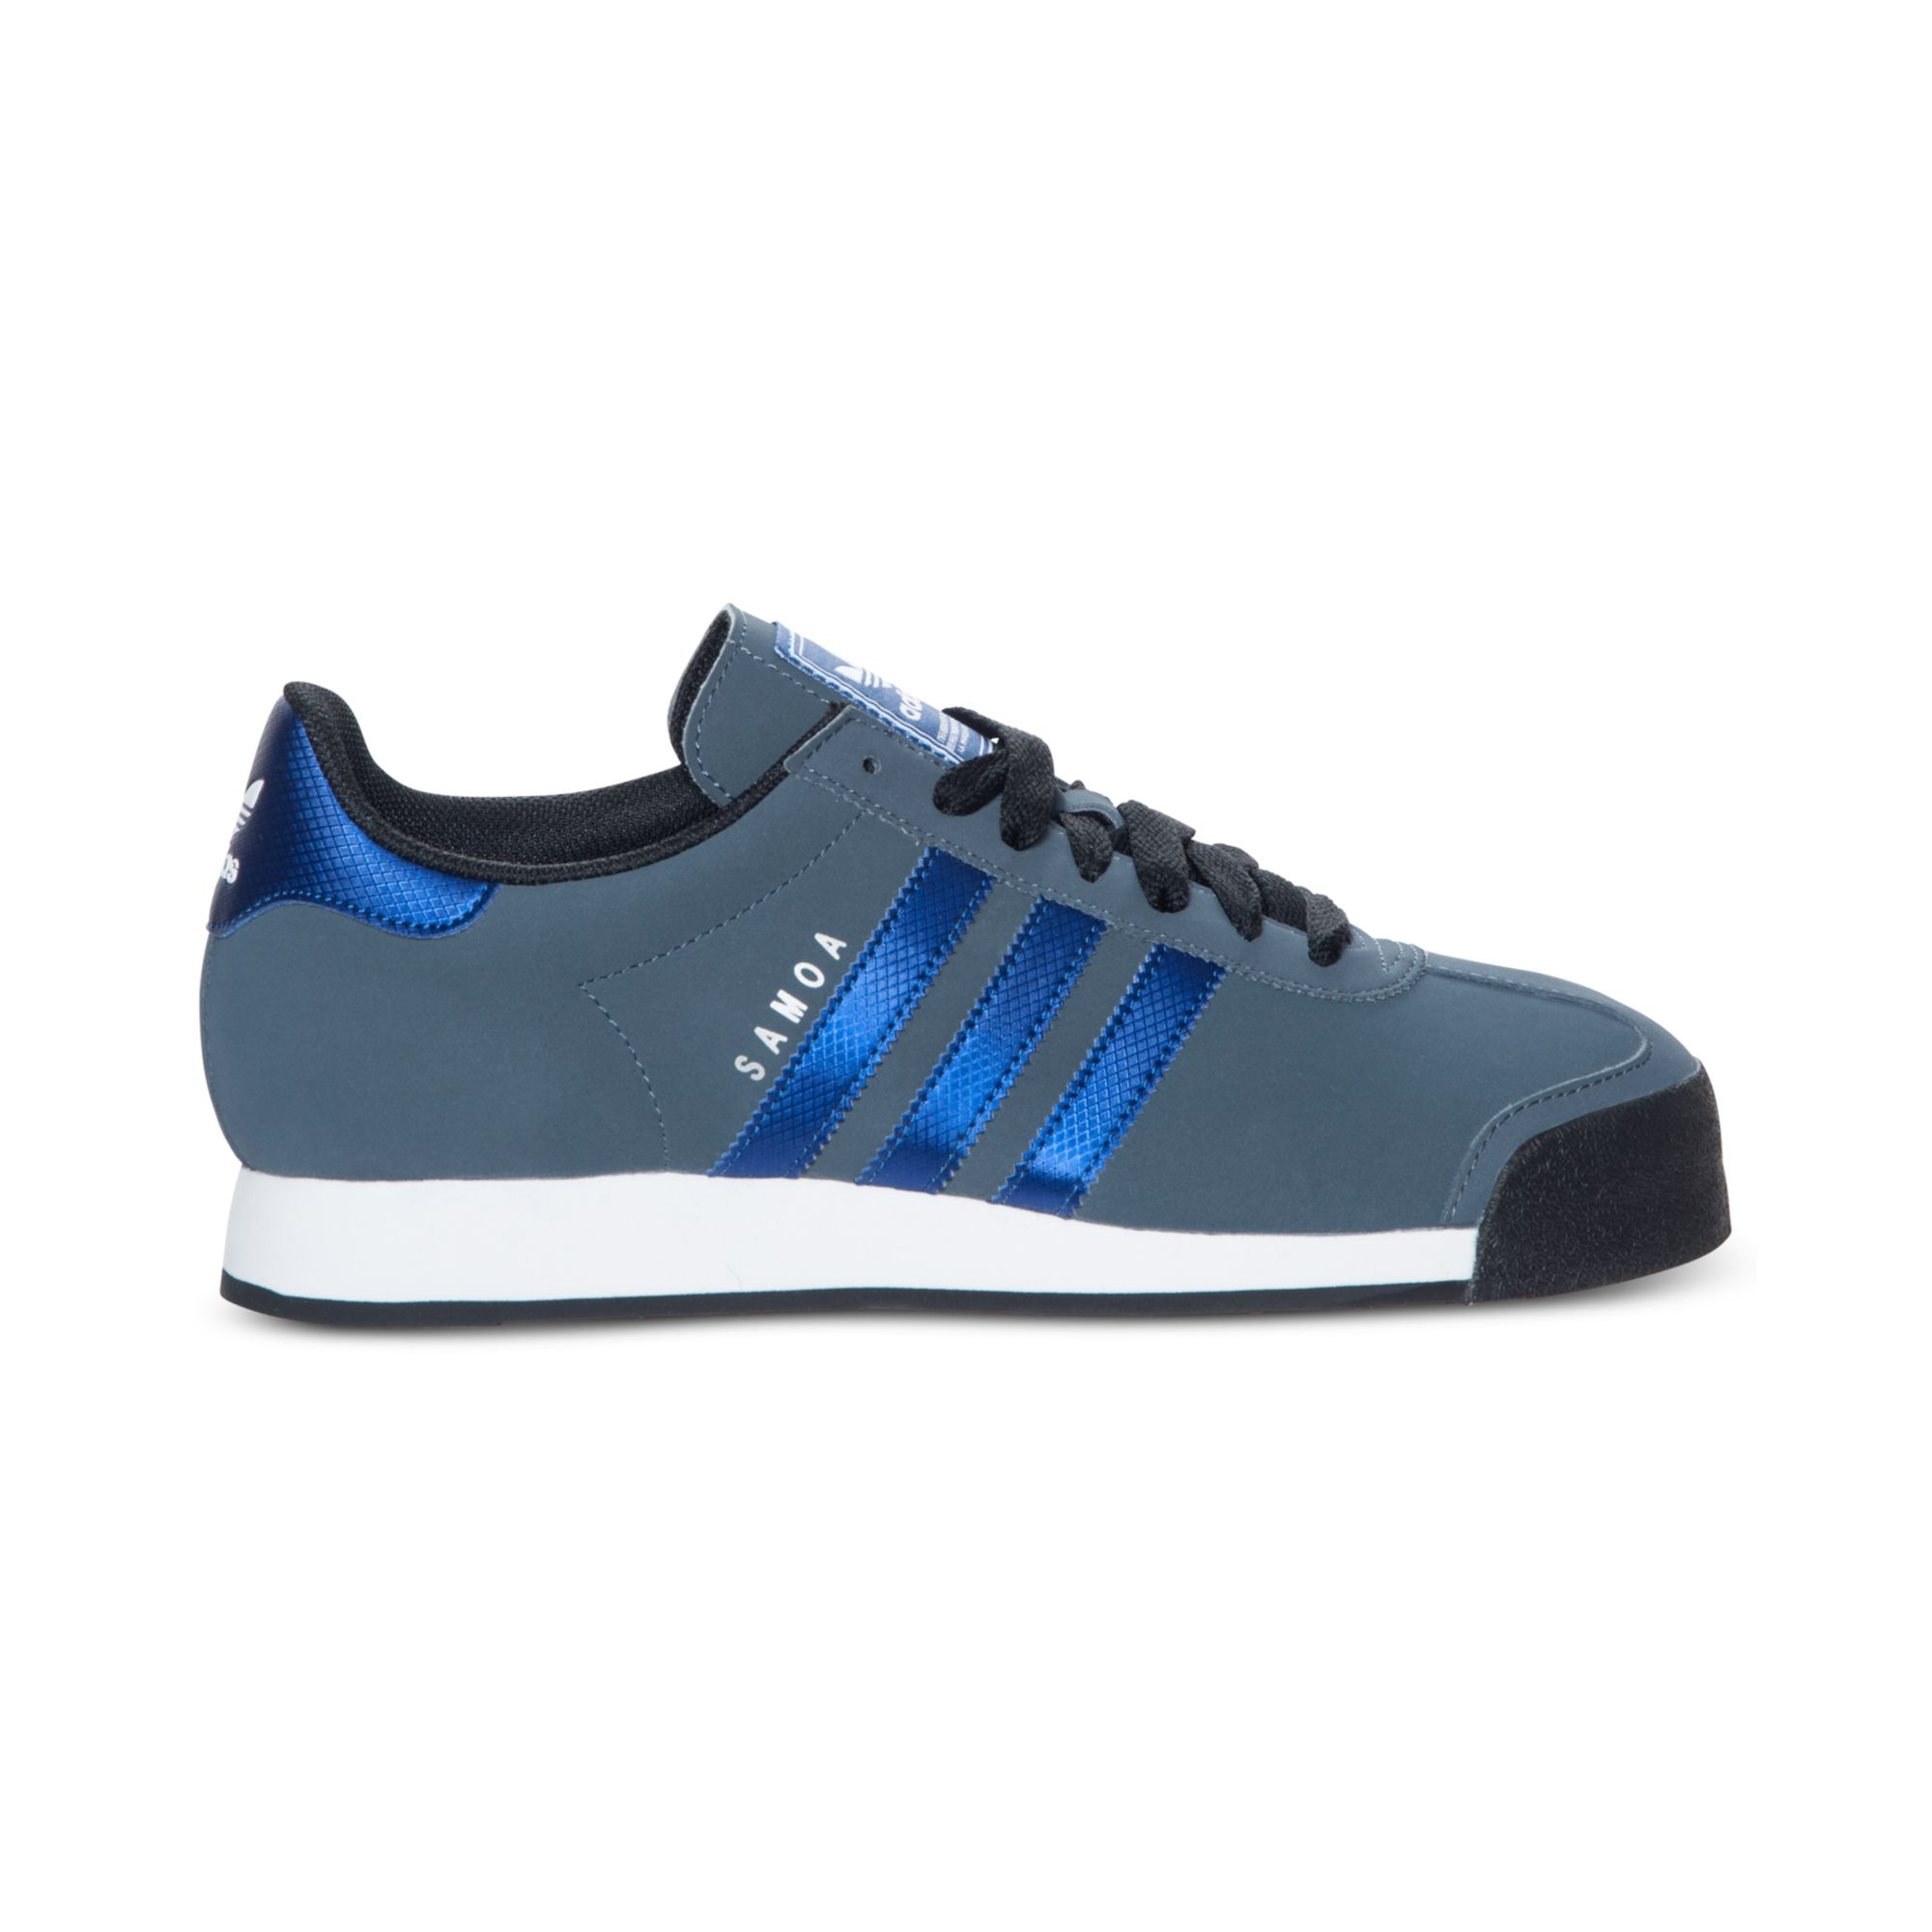 Adidas Sneakers Lyst Adidas Samoa Sneakers In Blue For Men